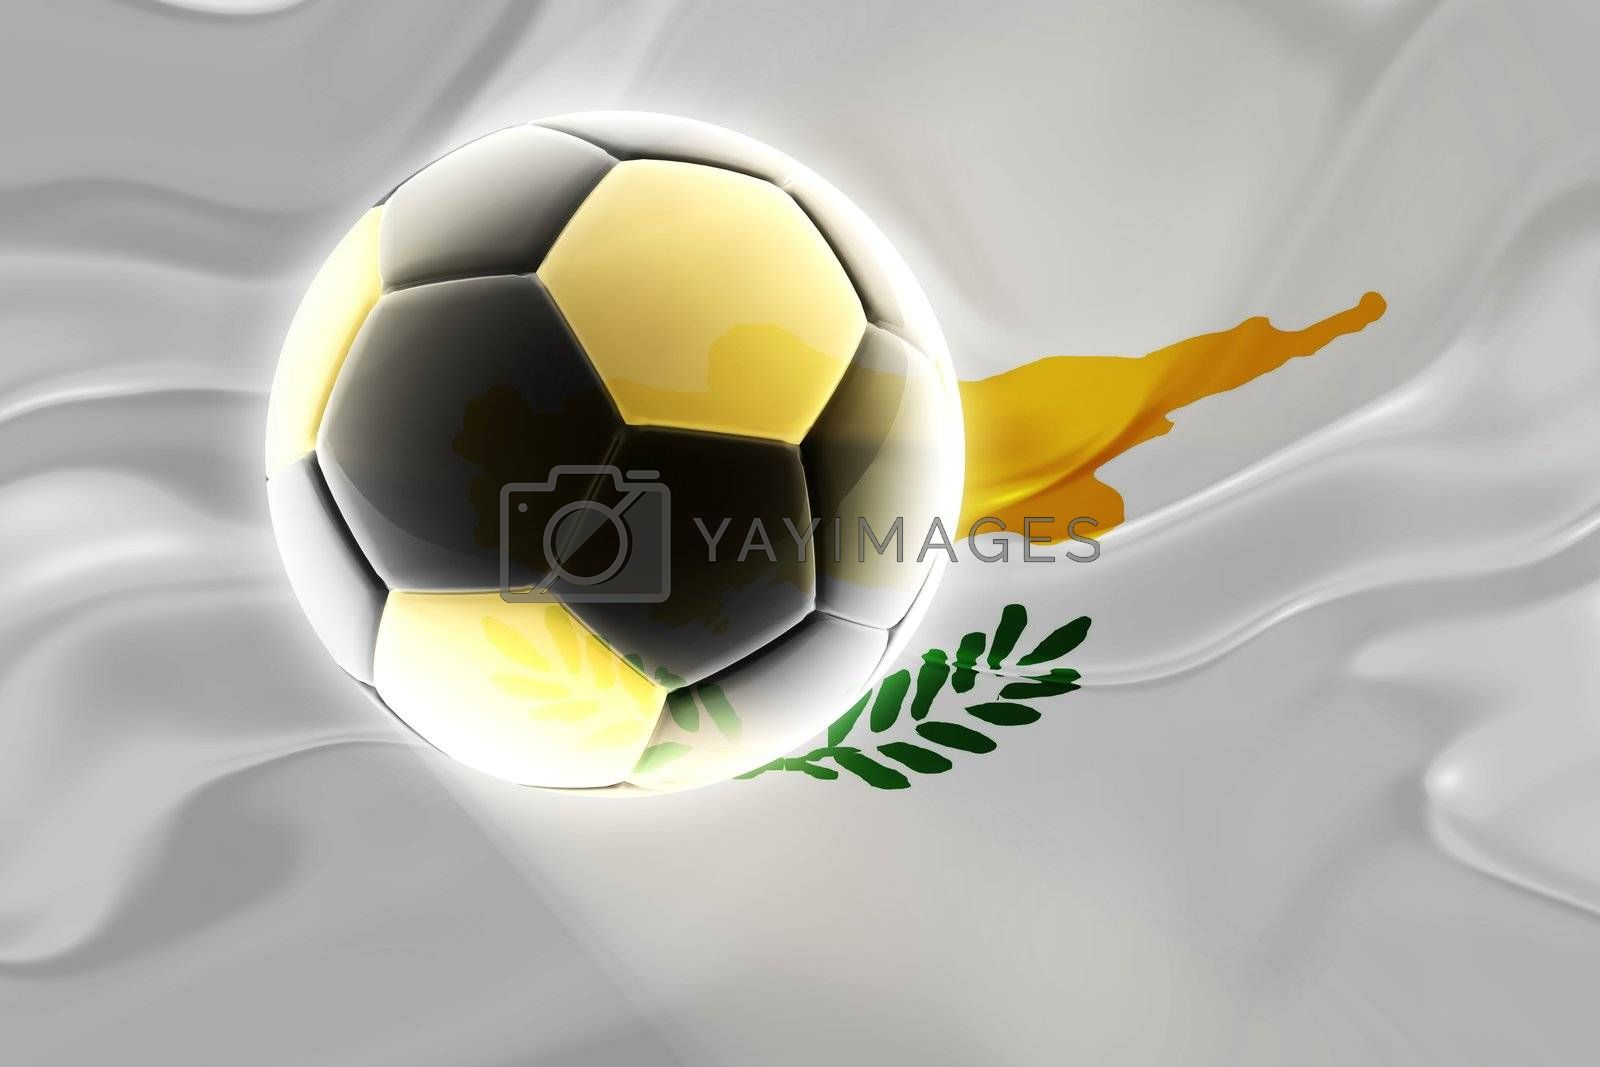 Flag of Cyprus, national symbol illustration clipart wavy fabric sports soccer football